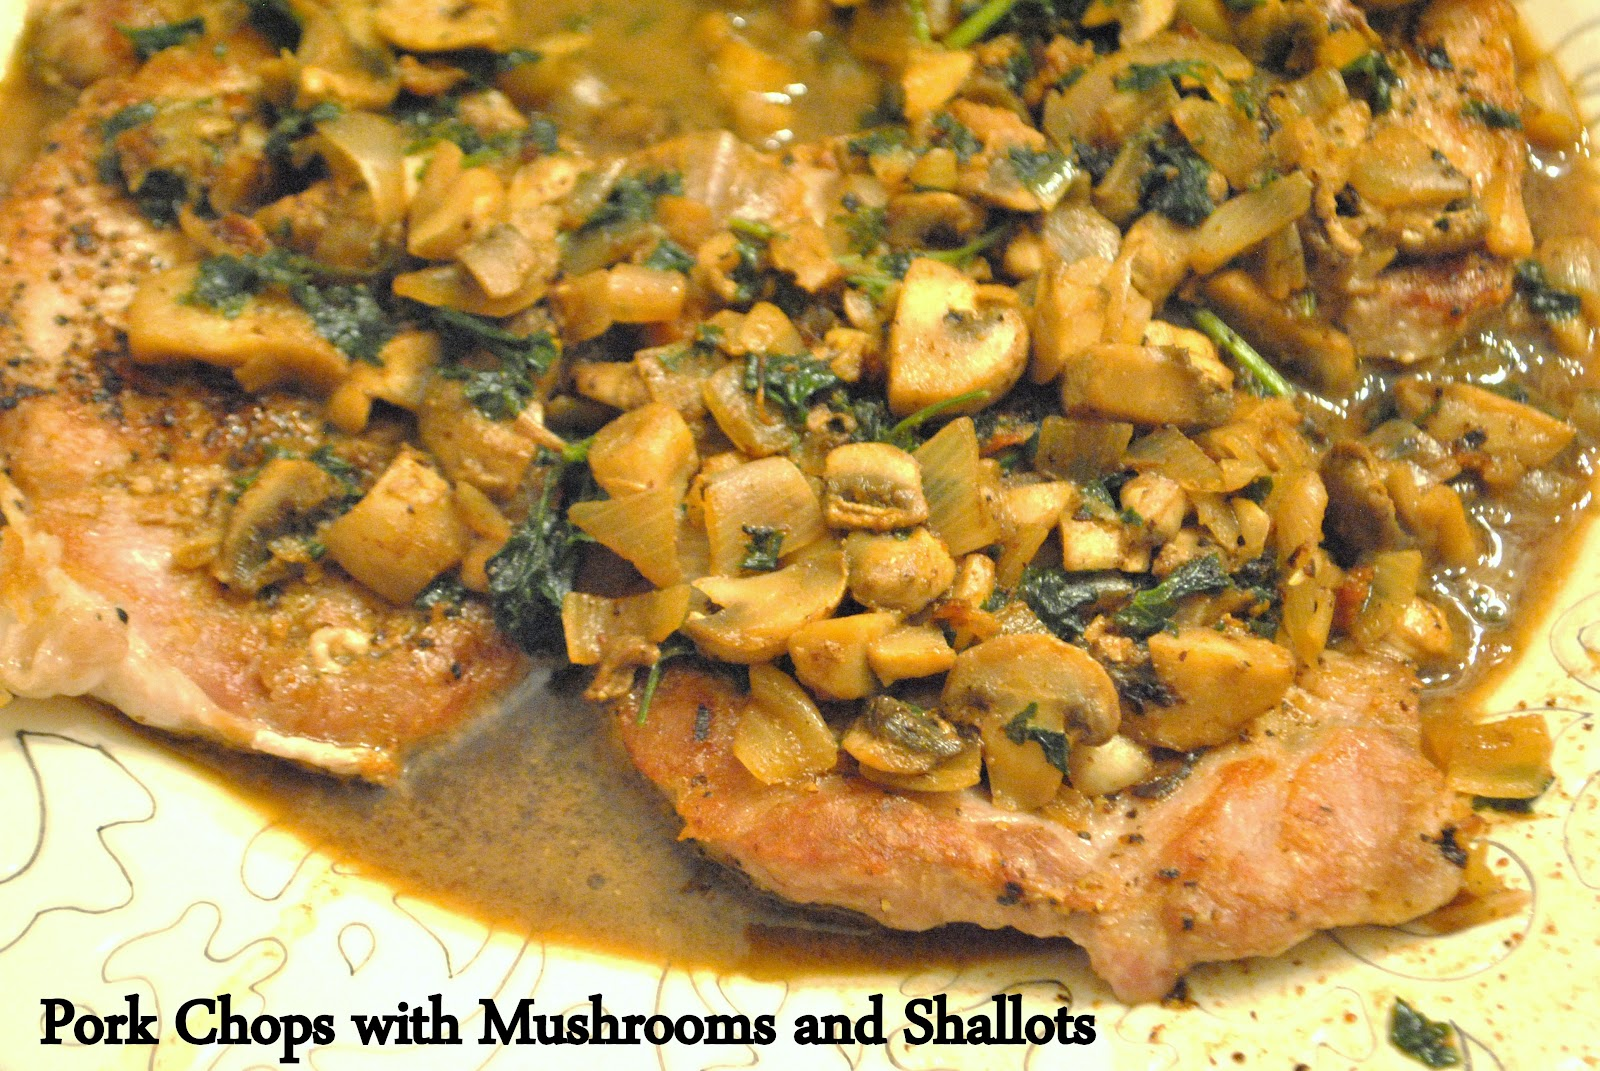 ThriceTheSpice: Pork Chops with Mushrooms and Shallots